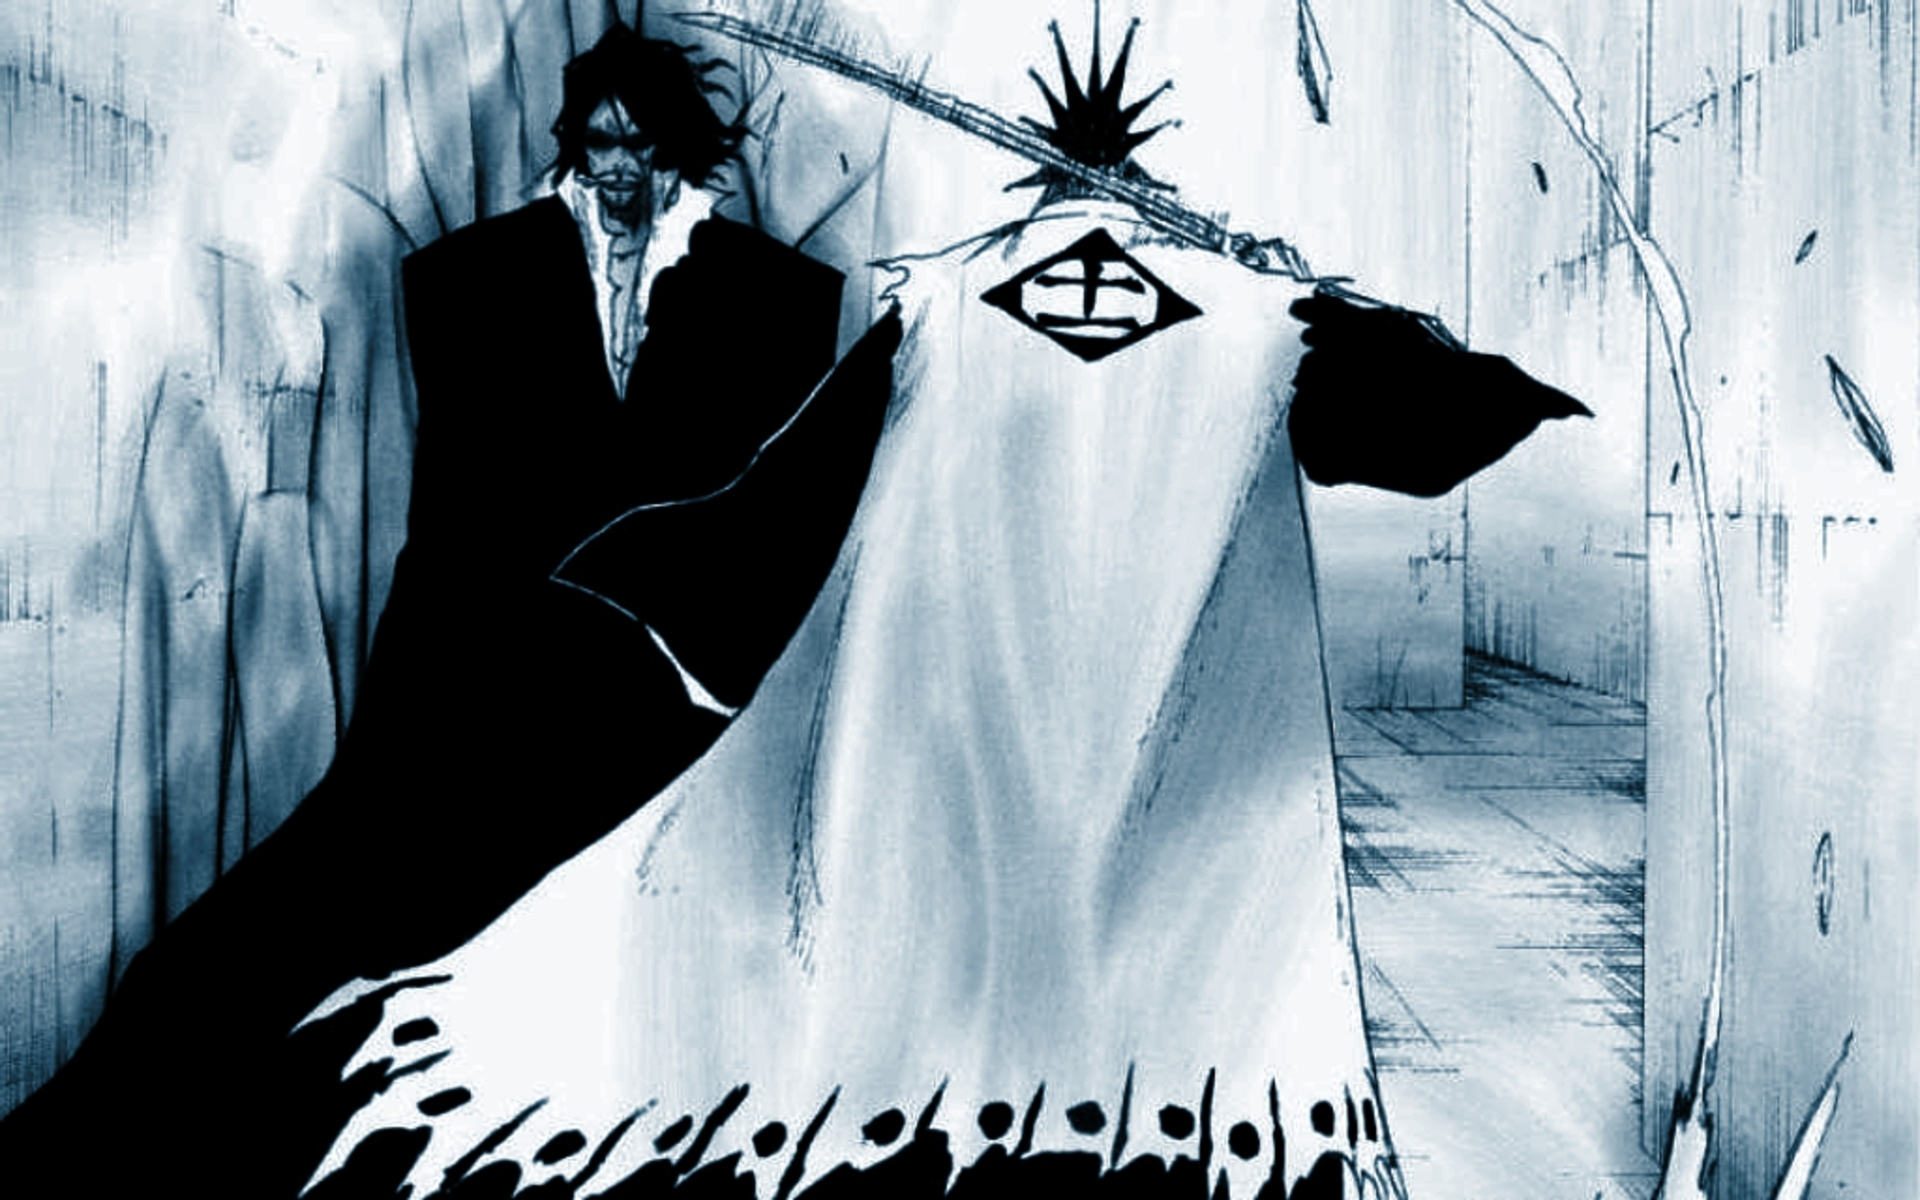 bleach Zaraki Kenpachi zangetsu HD Wallpaper